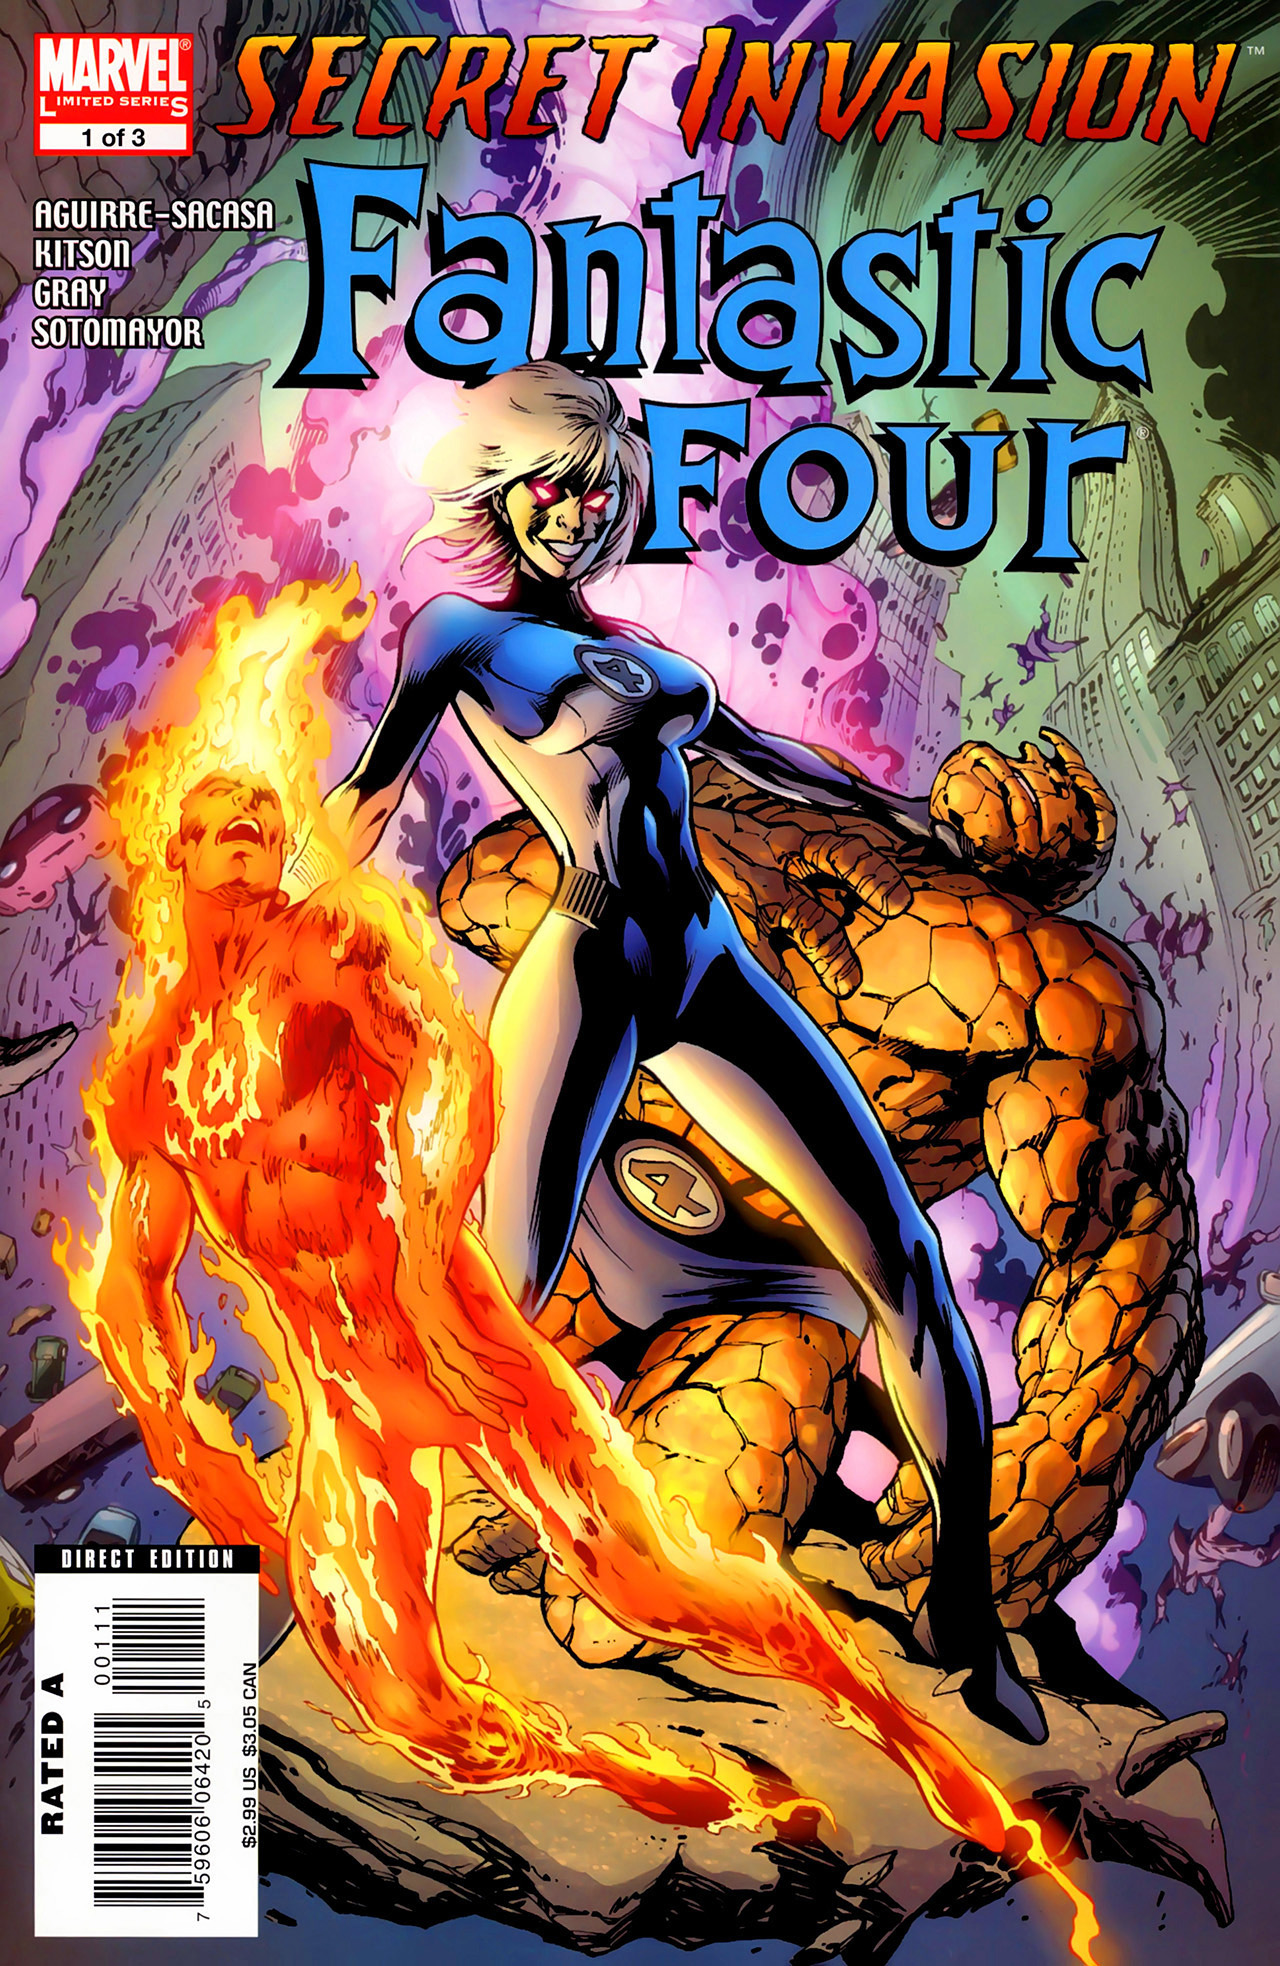 Secret Invasion: Fantastic Four Vol 1 1